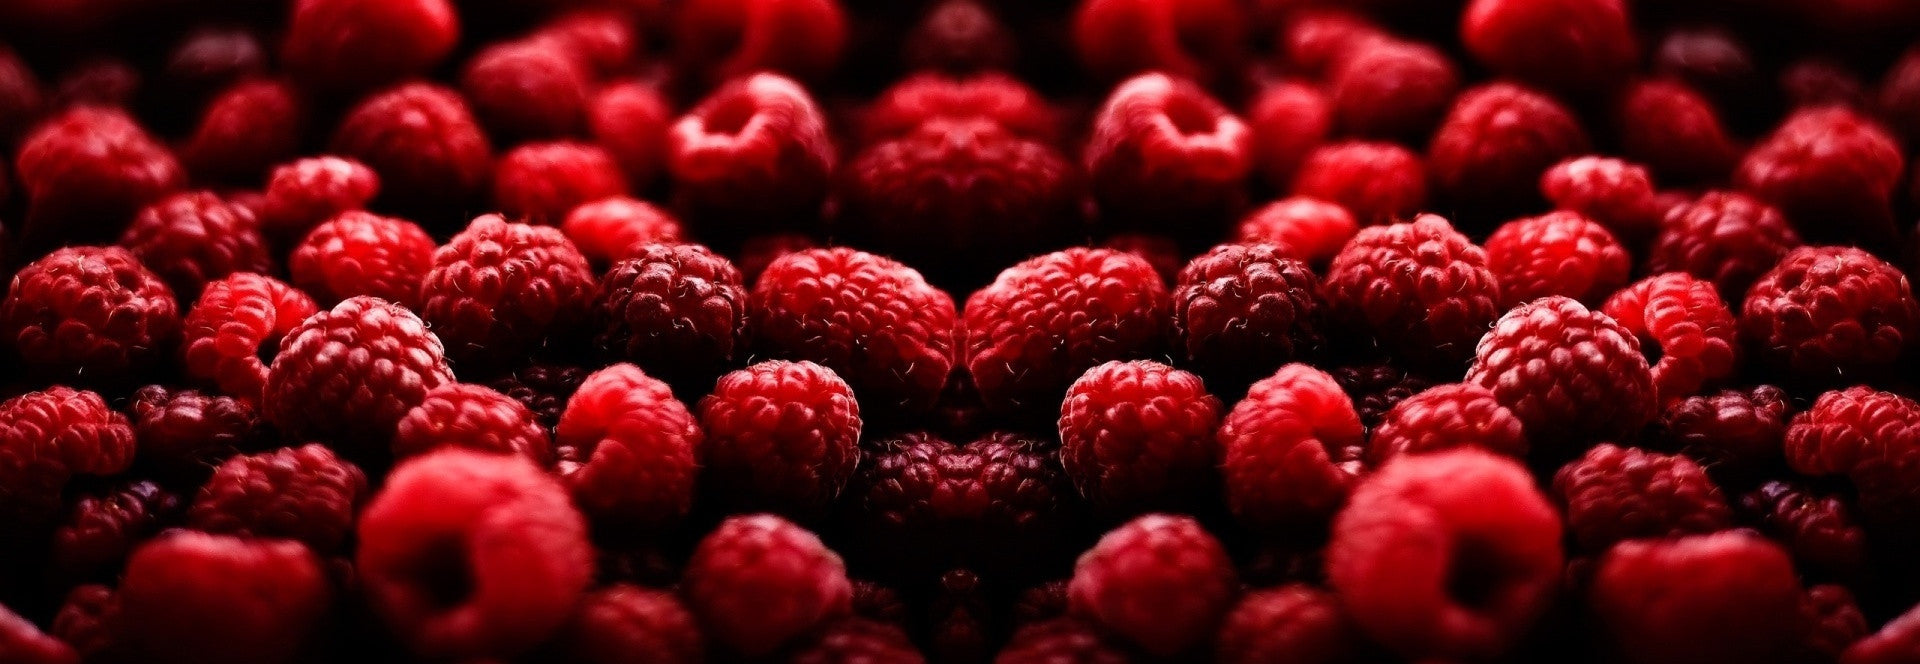 collections/6990203-red-fruits-background.jpg